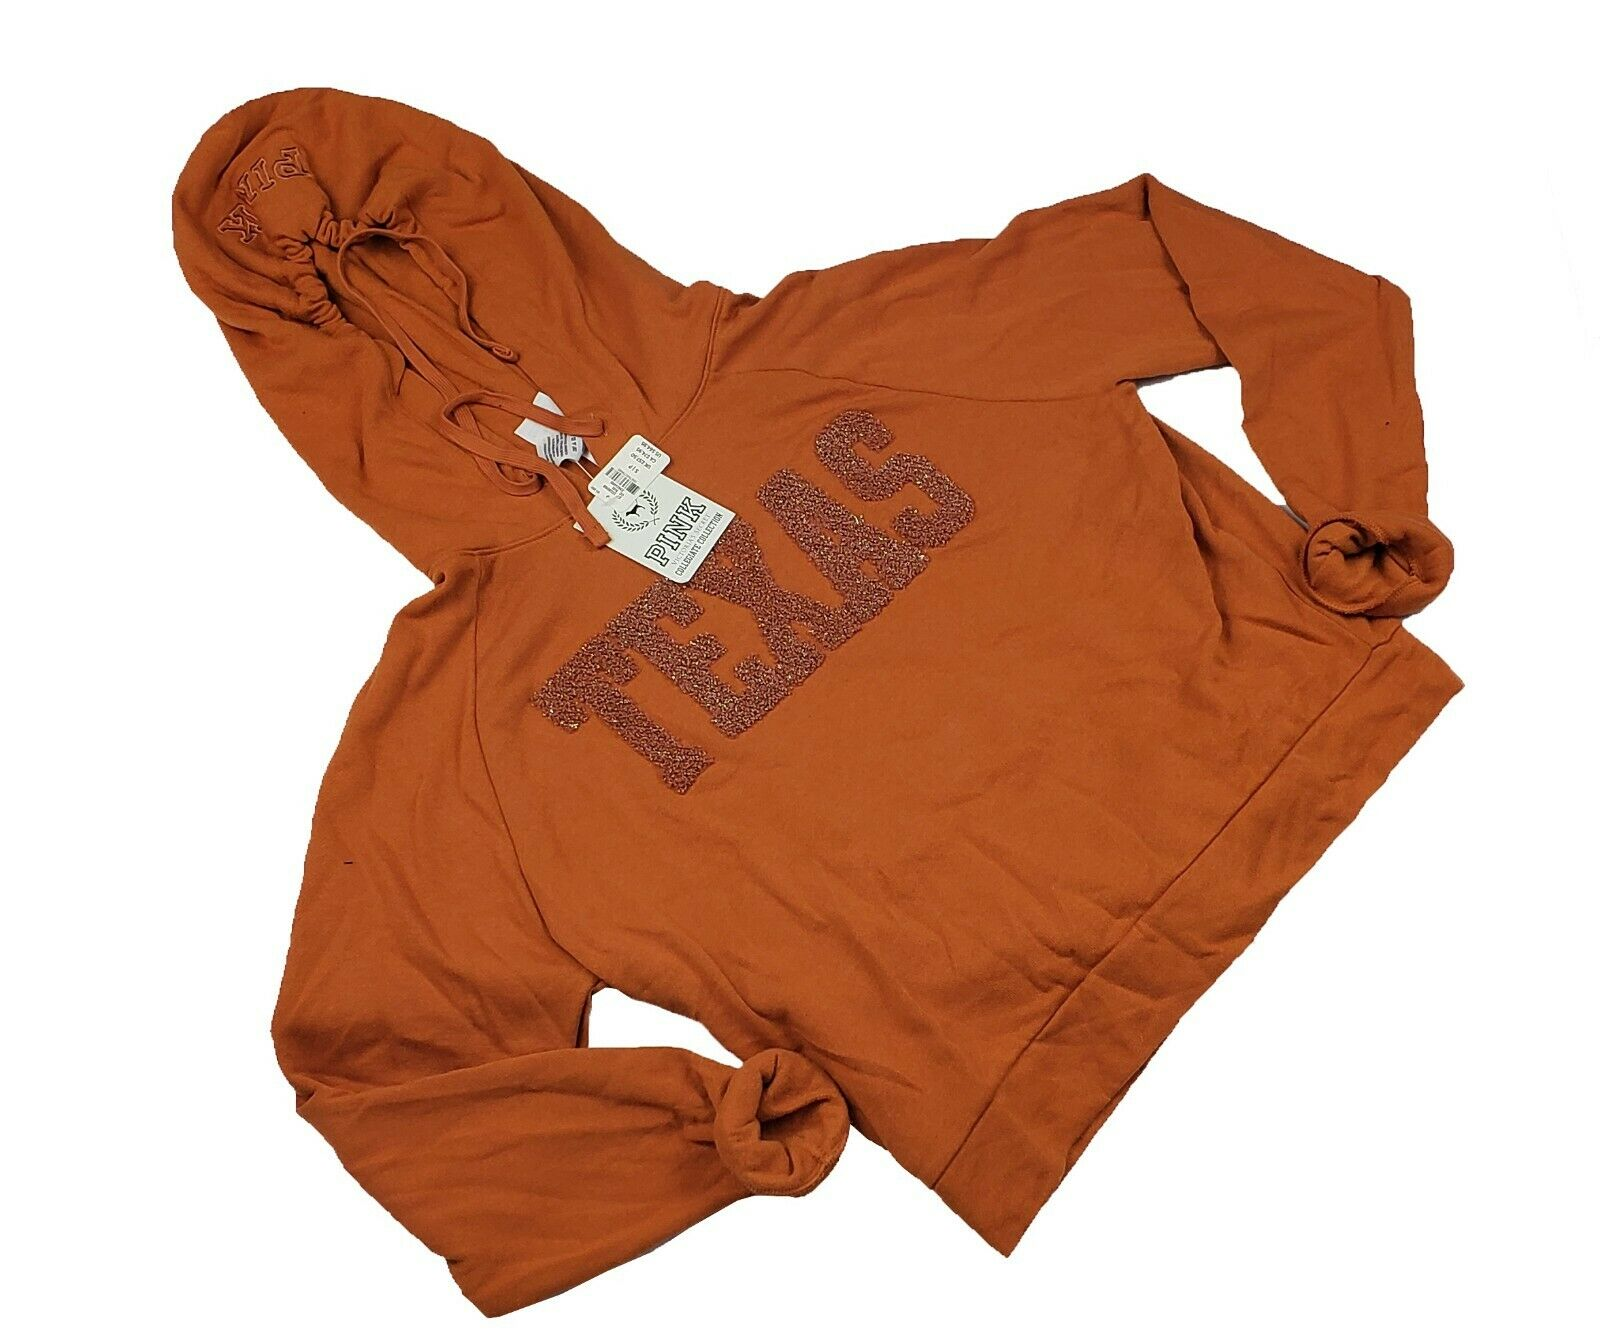 NWT Victoria's Secret Pink Collegiate Collection Texas Hoodie Small